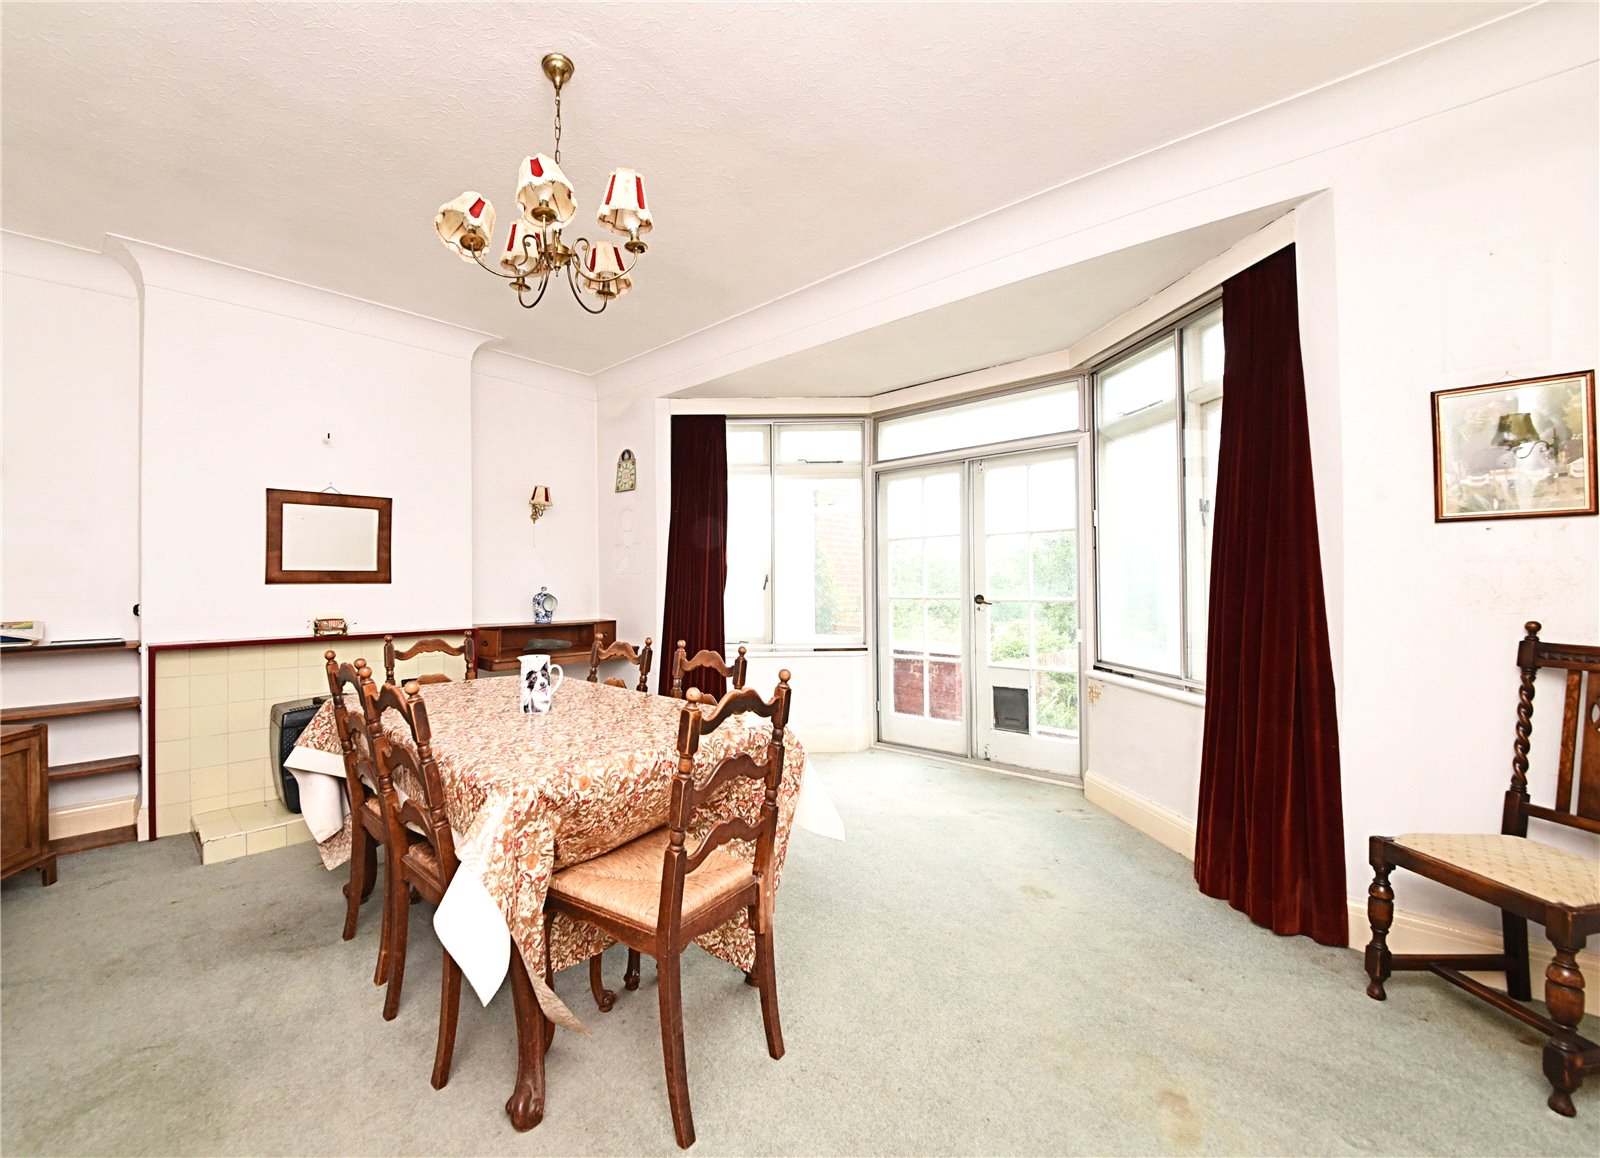 4 bed house for sale in Totteridge, N20 8QR 2